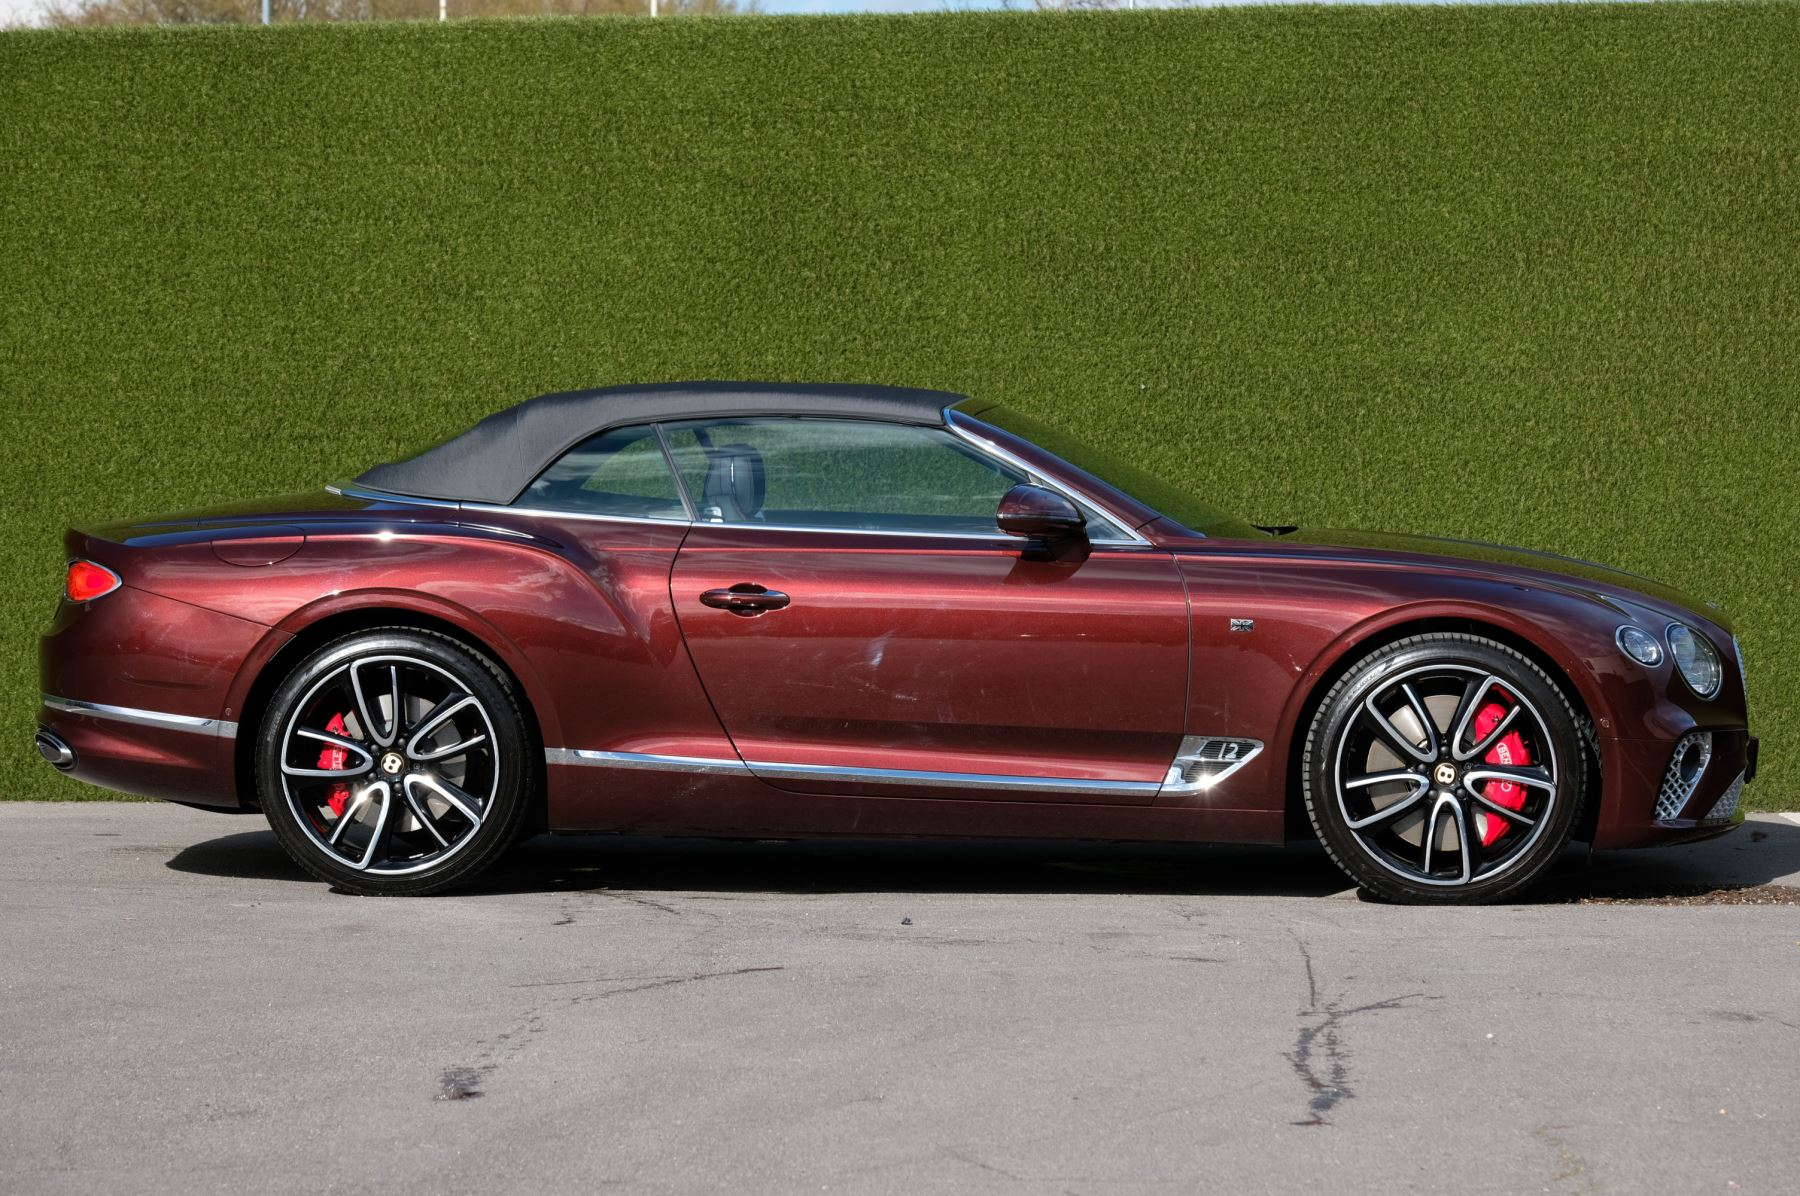 Bentley Continental GTC 6.0 W12 - First Edition Specification image 3